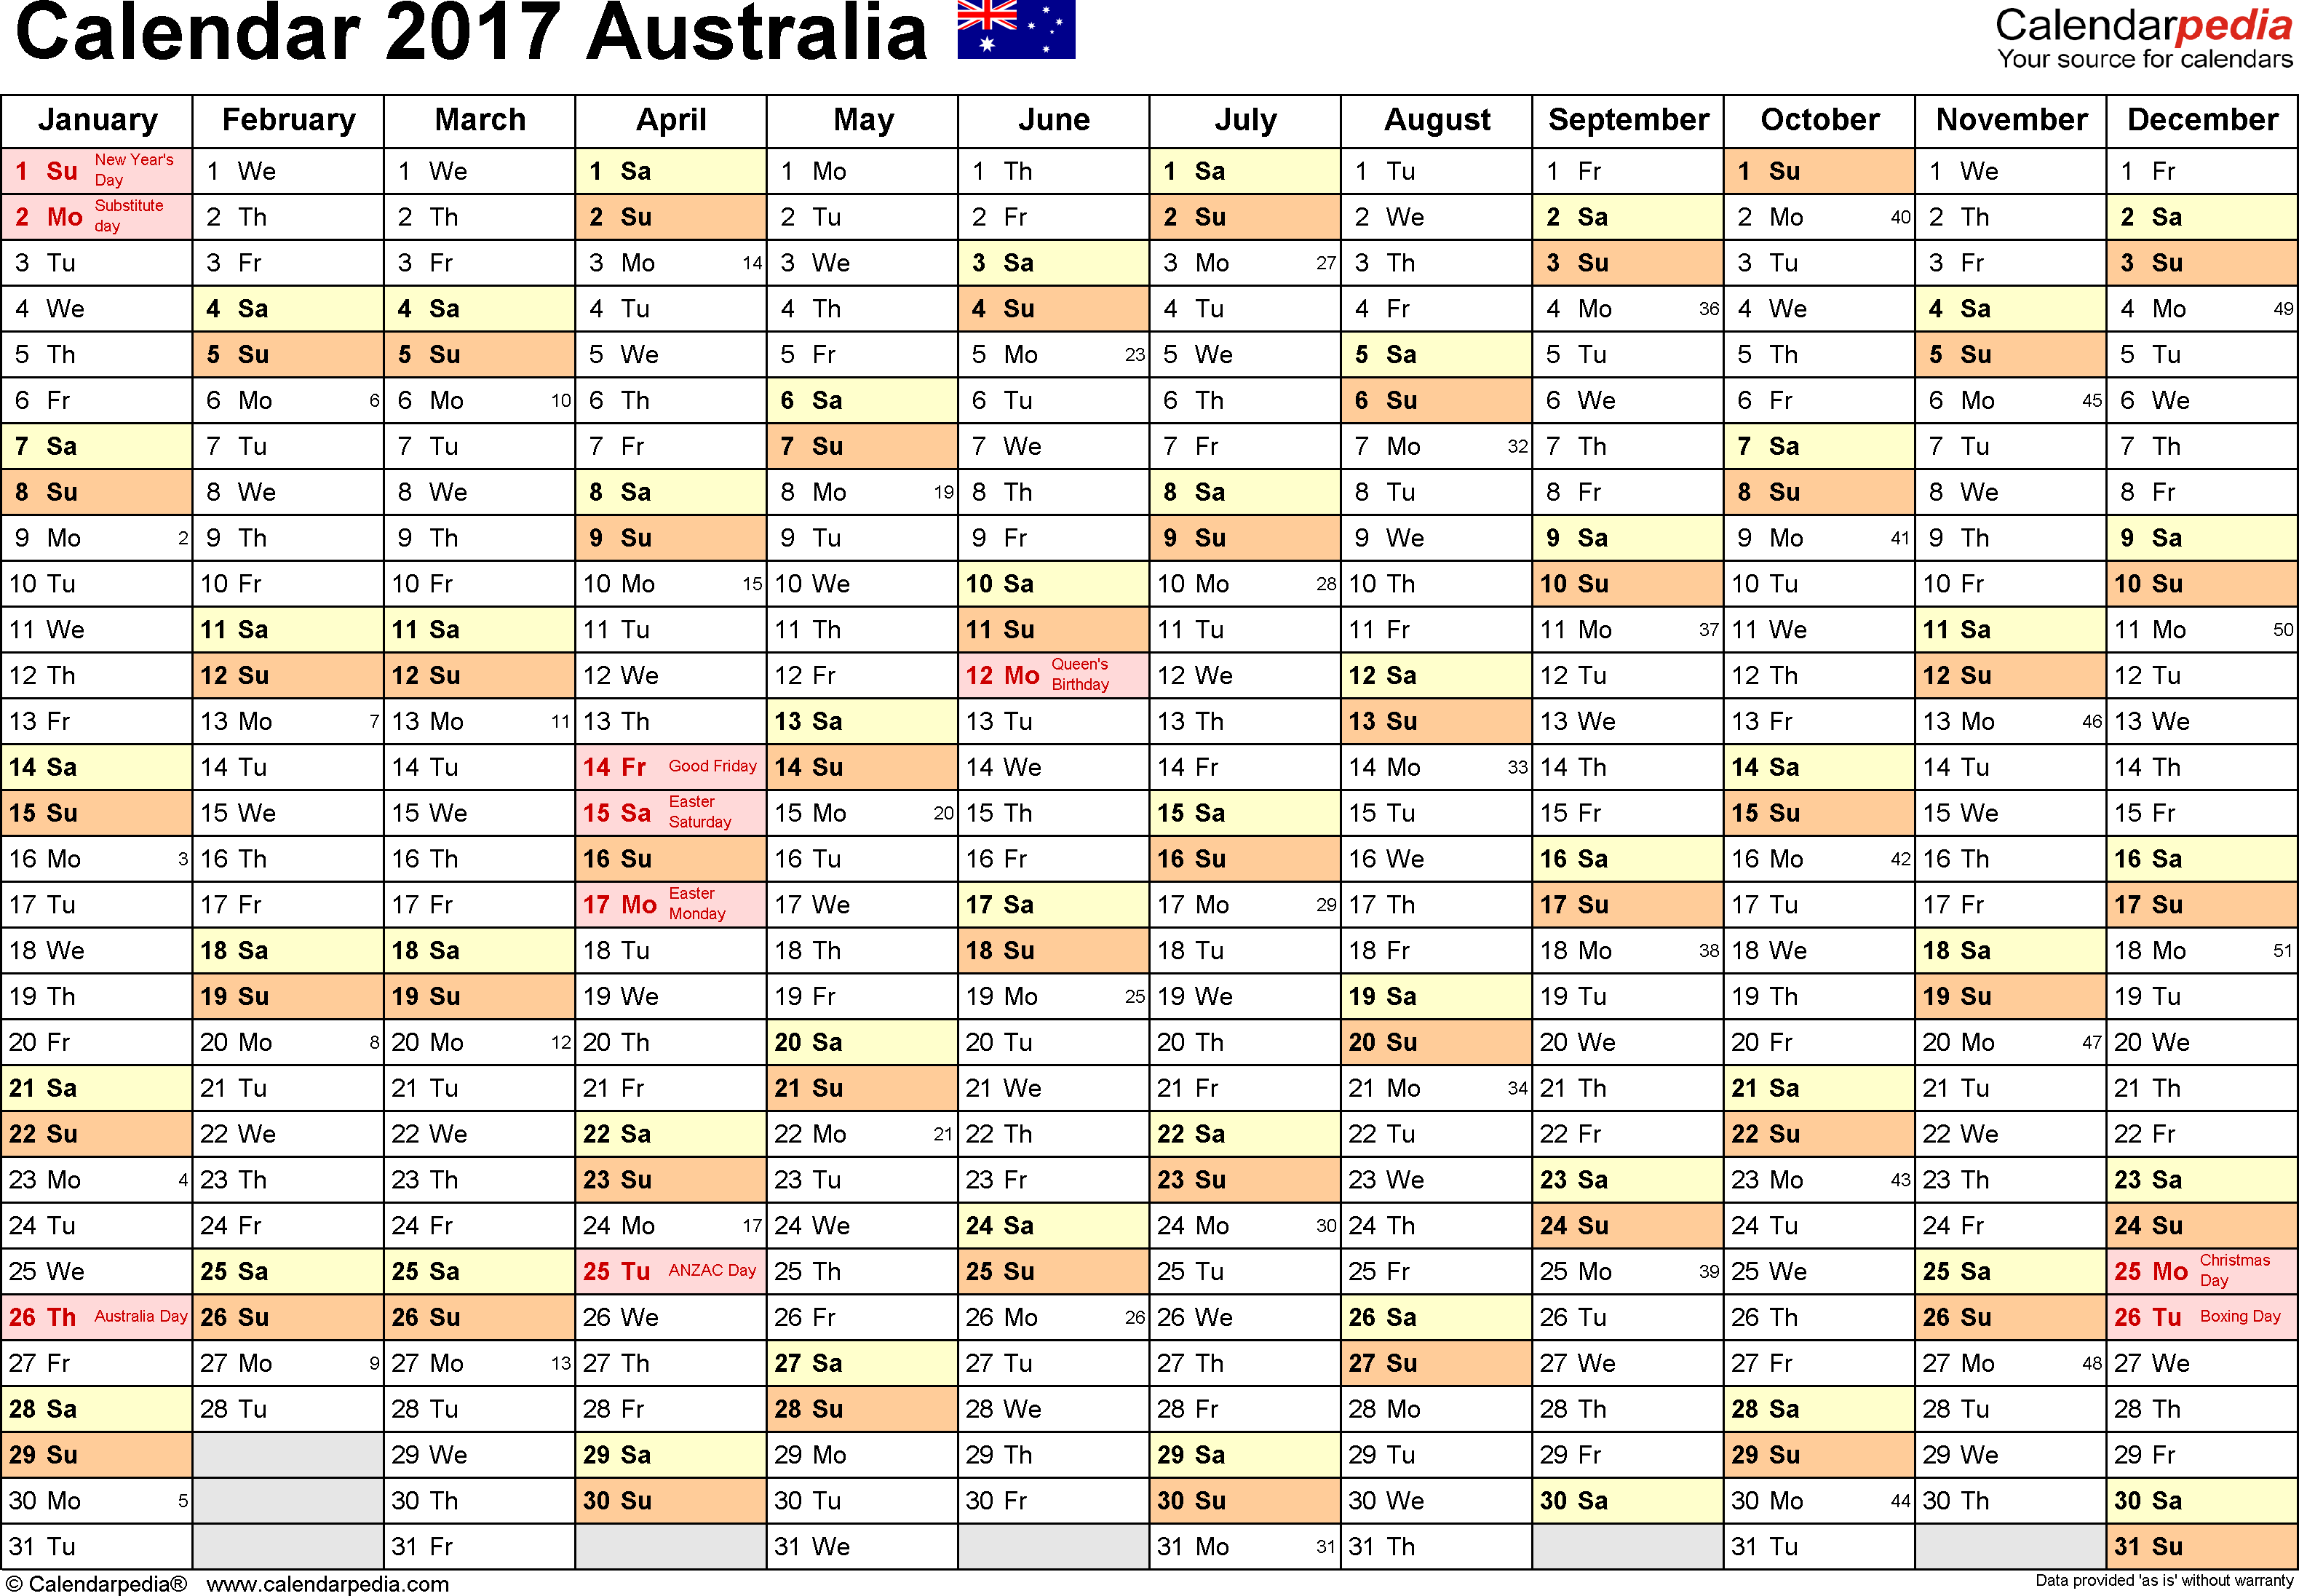 Template 2: 2017 Calendar Australia for PDF, months horizontally, 1 page, landscape orientation